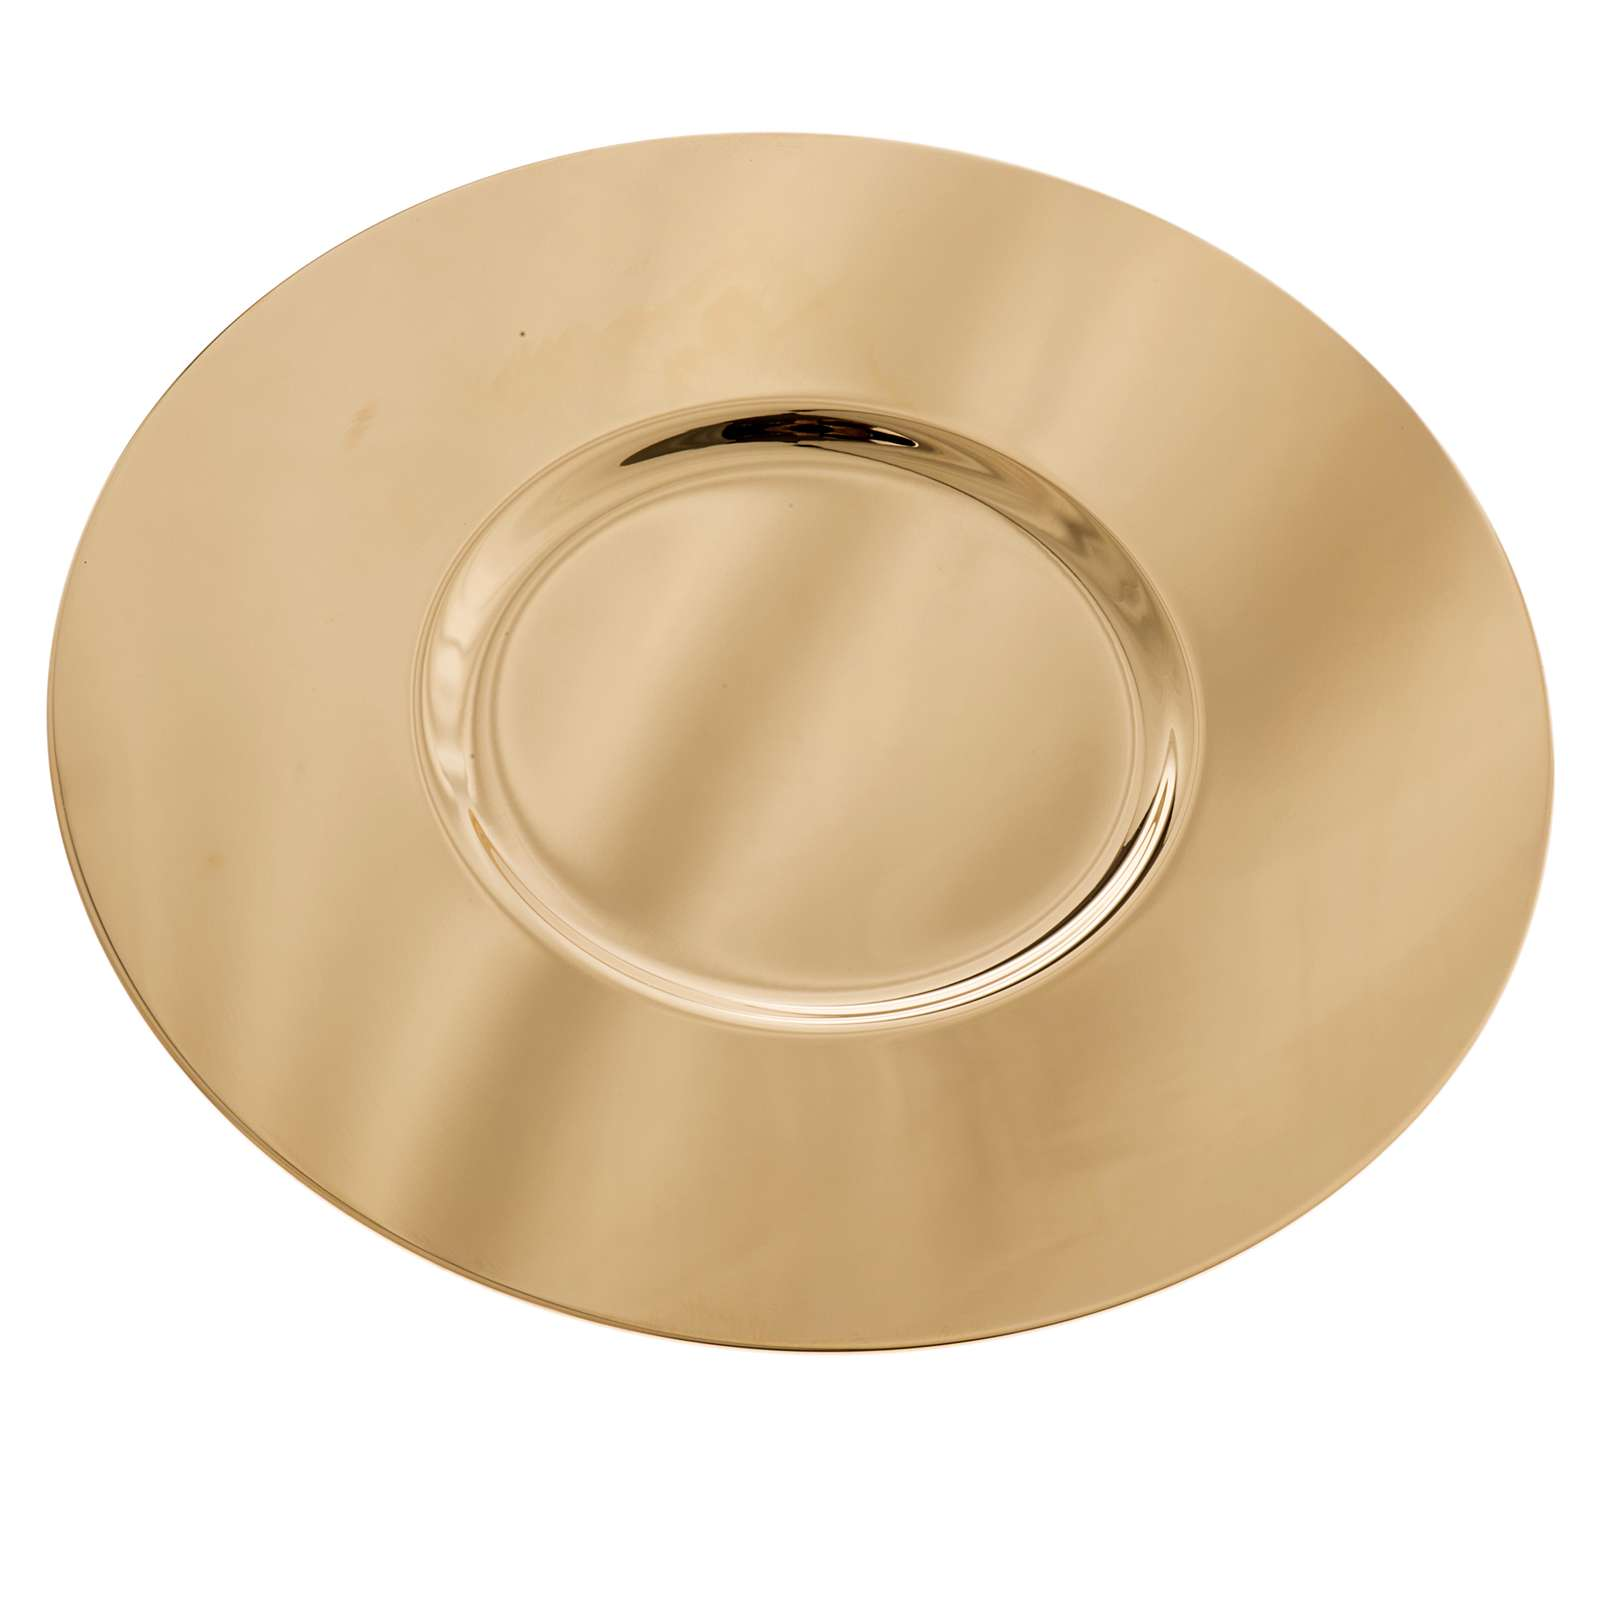 Paten in golden brass with shaped bottom, 15 cm 4